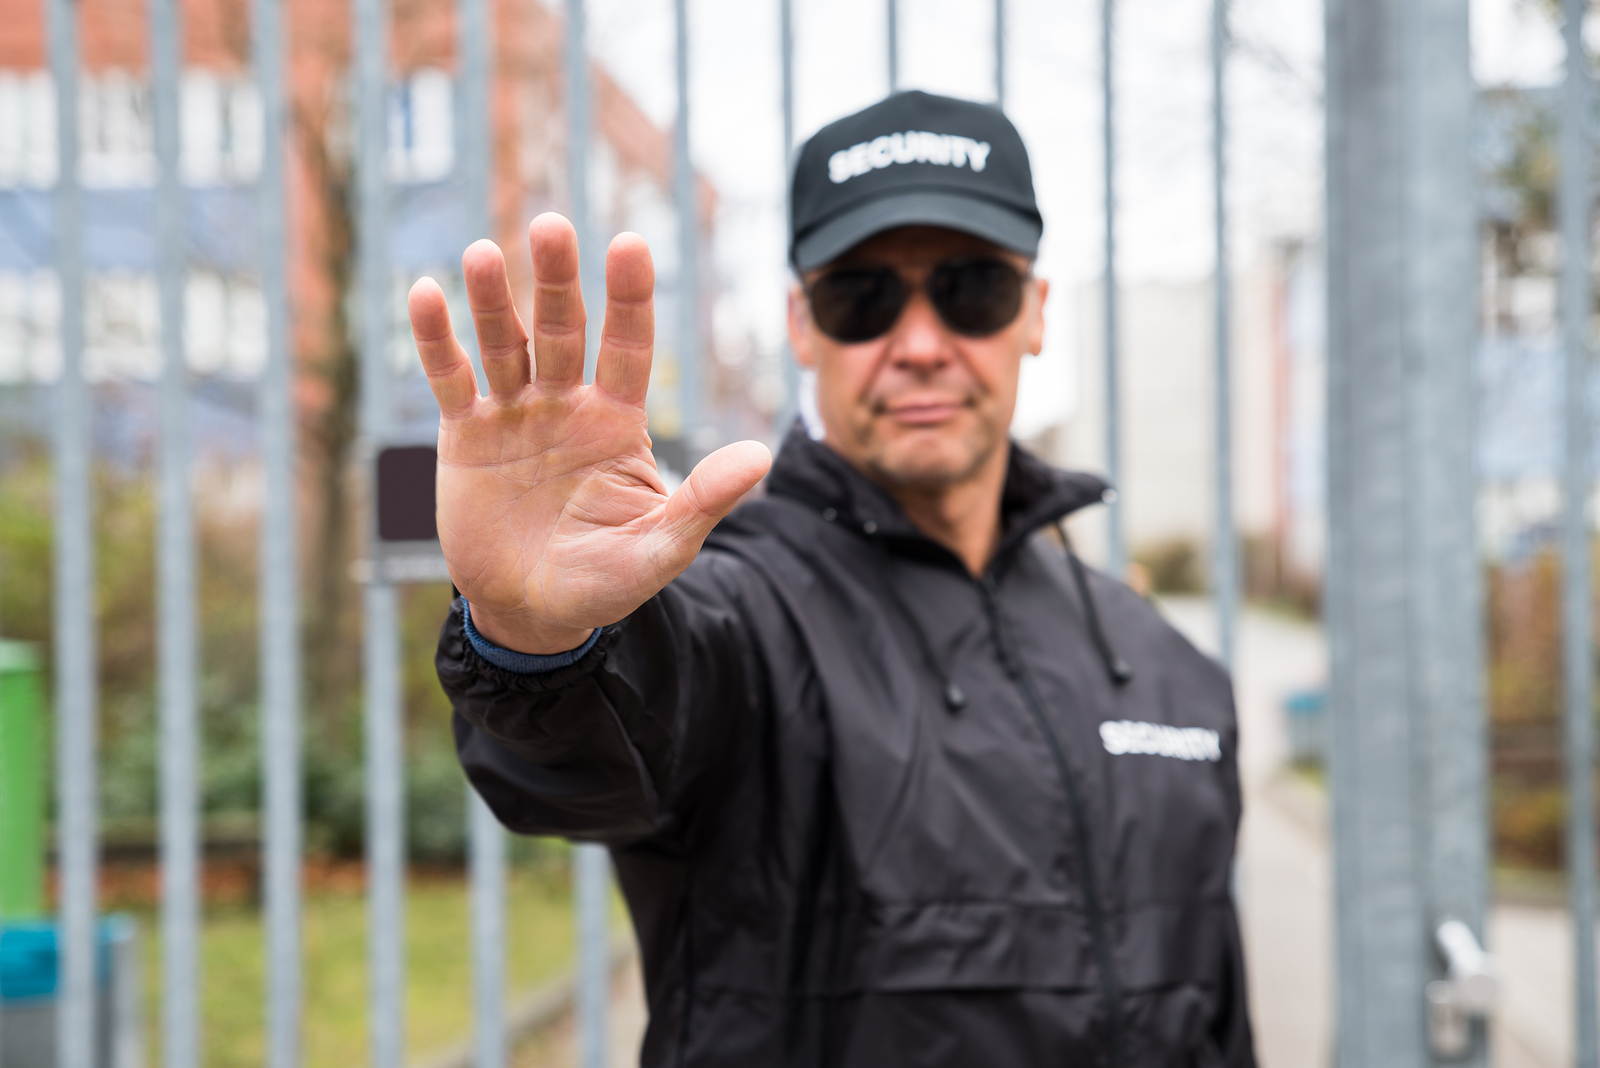 Confident security guard making stop gesture in front of gate